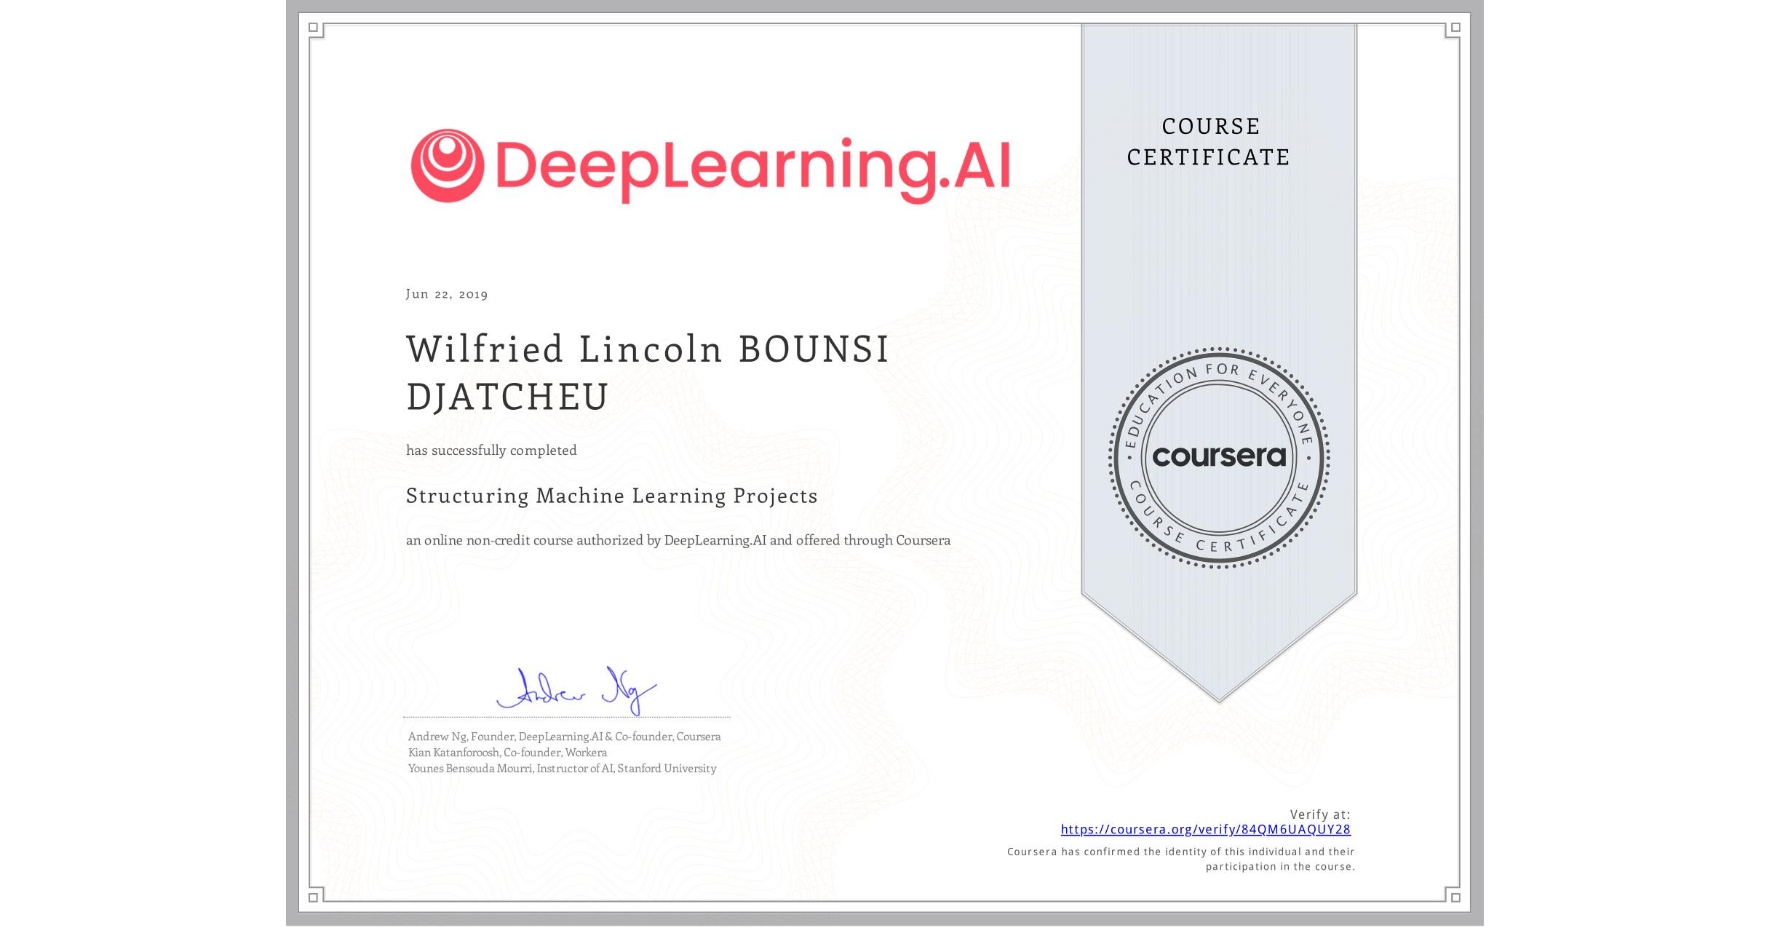 View certificate for Wilfried Lincoln BOUNSI DJATCHEU, Structuring Machine Learning Projects, an online non-credit course authorized by DeepLearning.AI and offered through Coursera